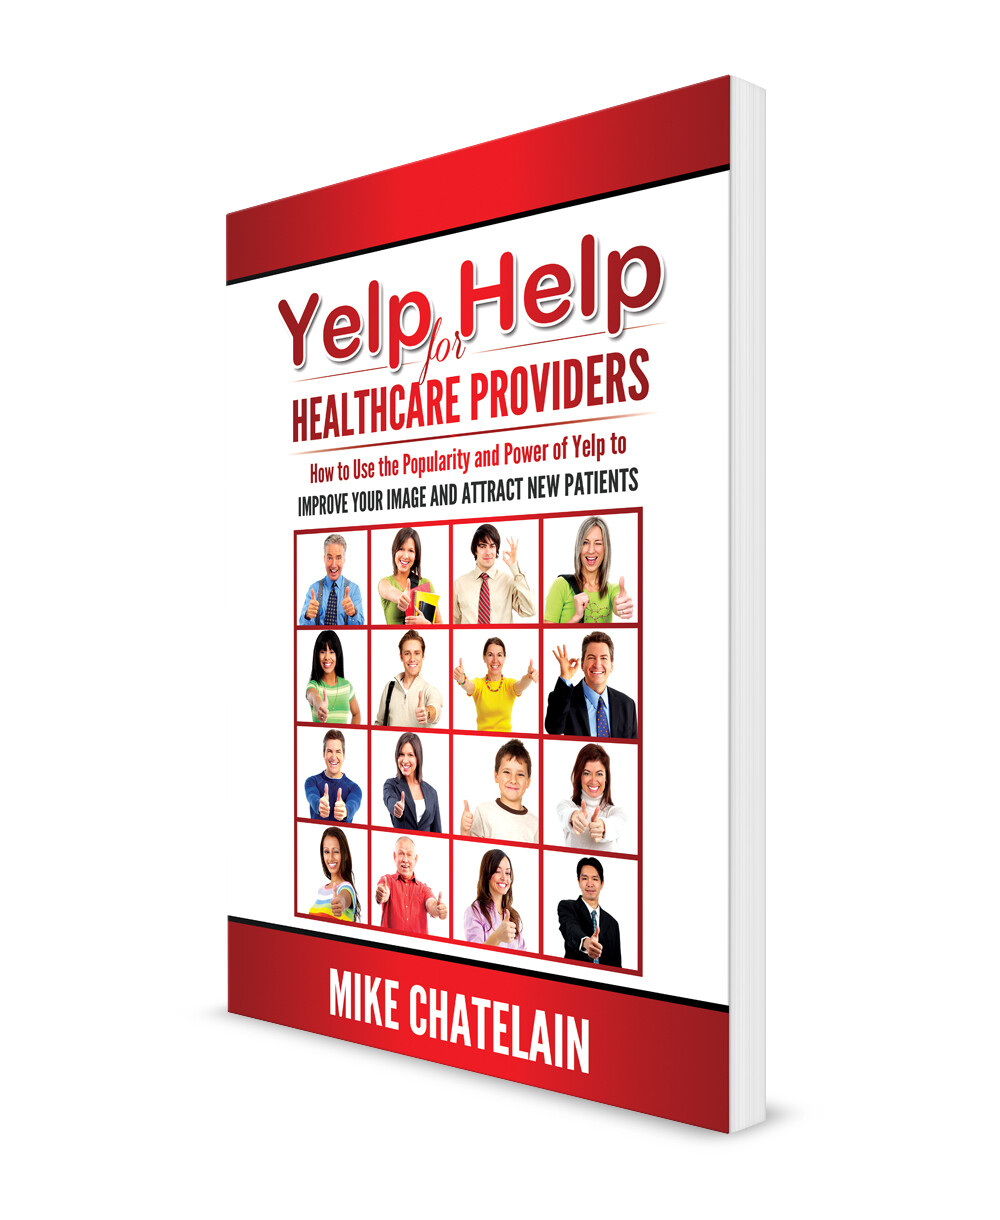 Yelp Help for Healthcare Providers